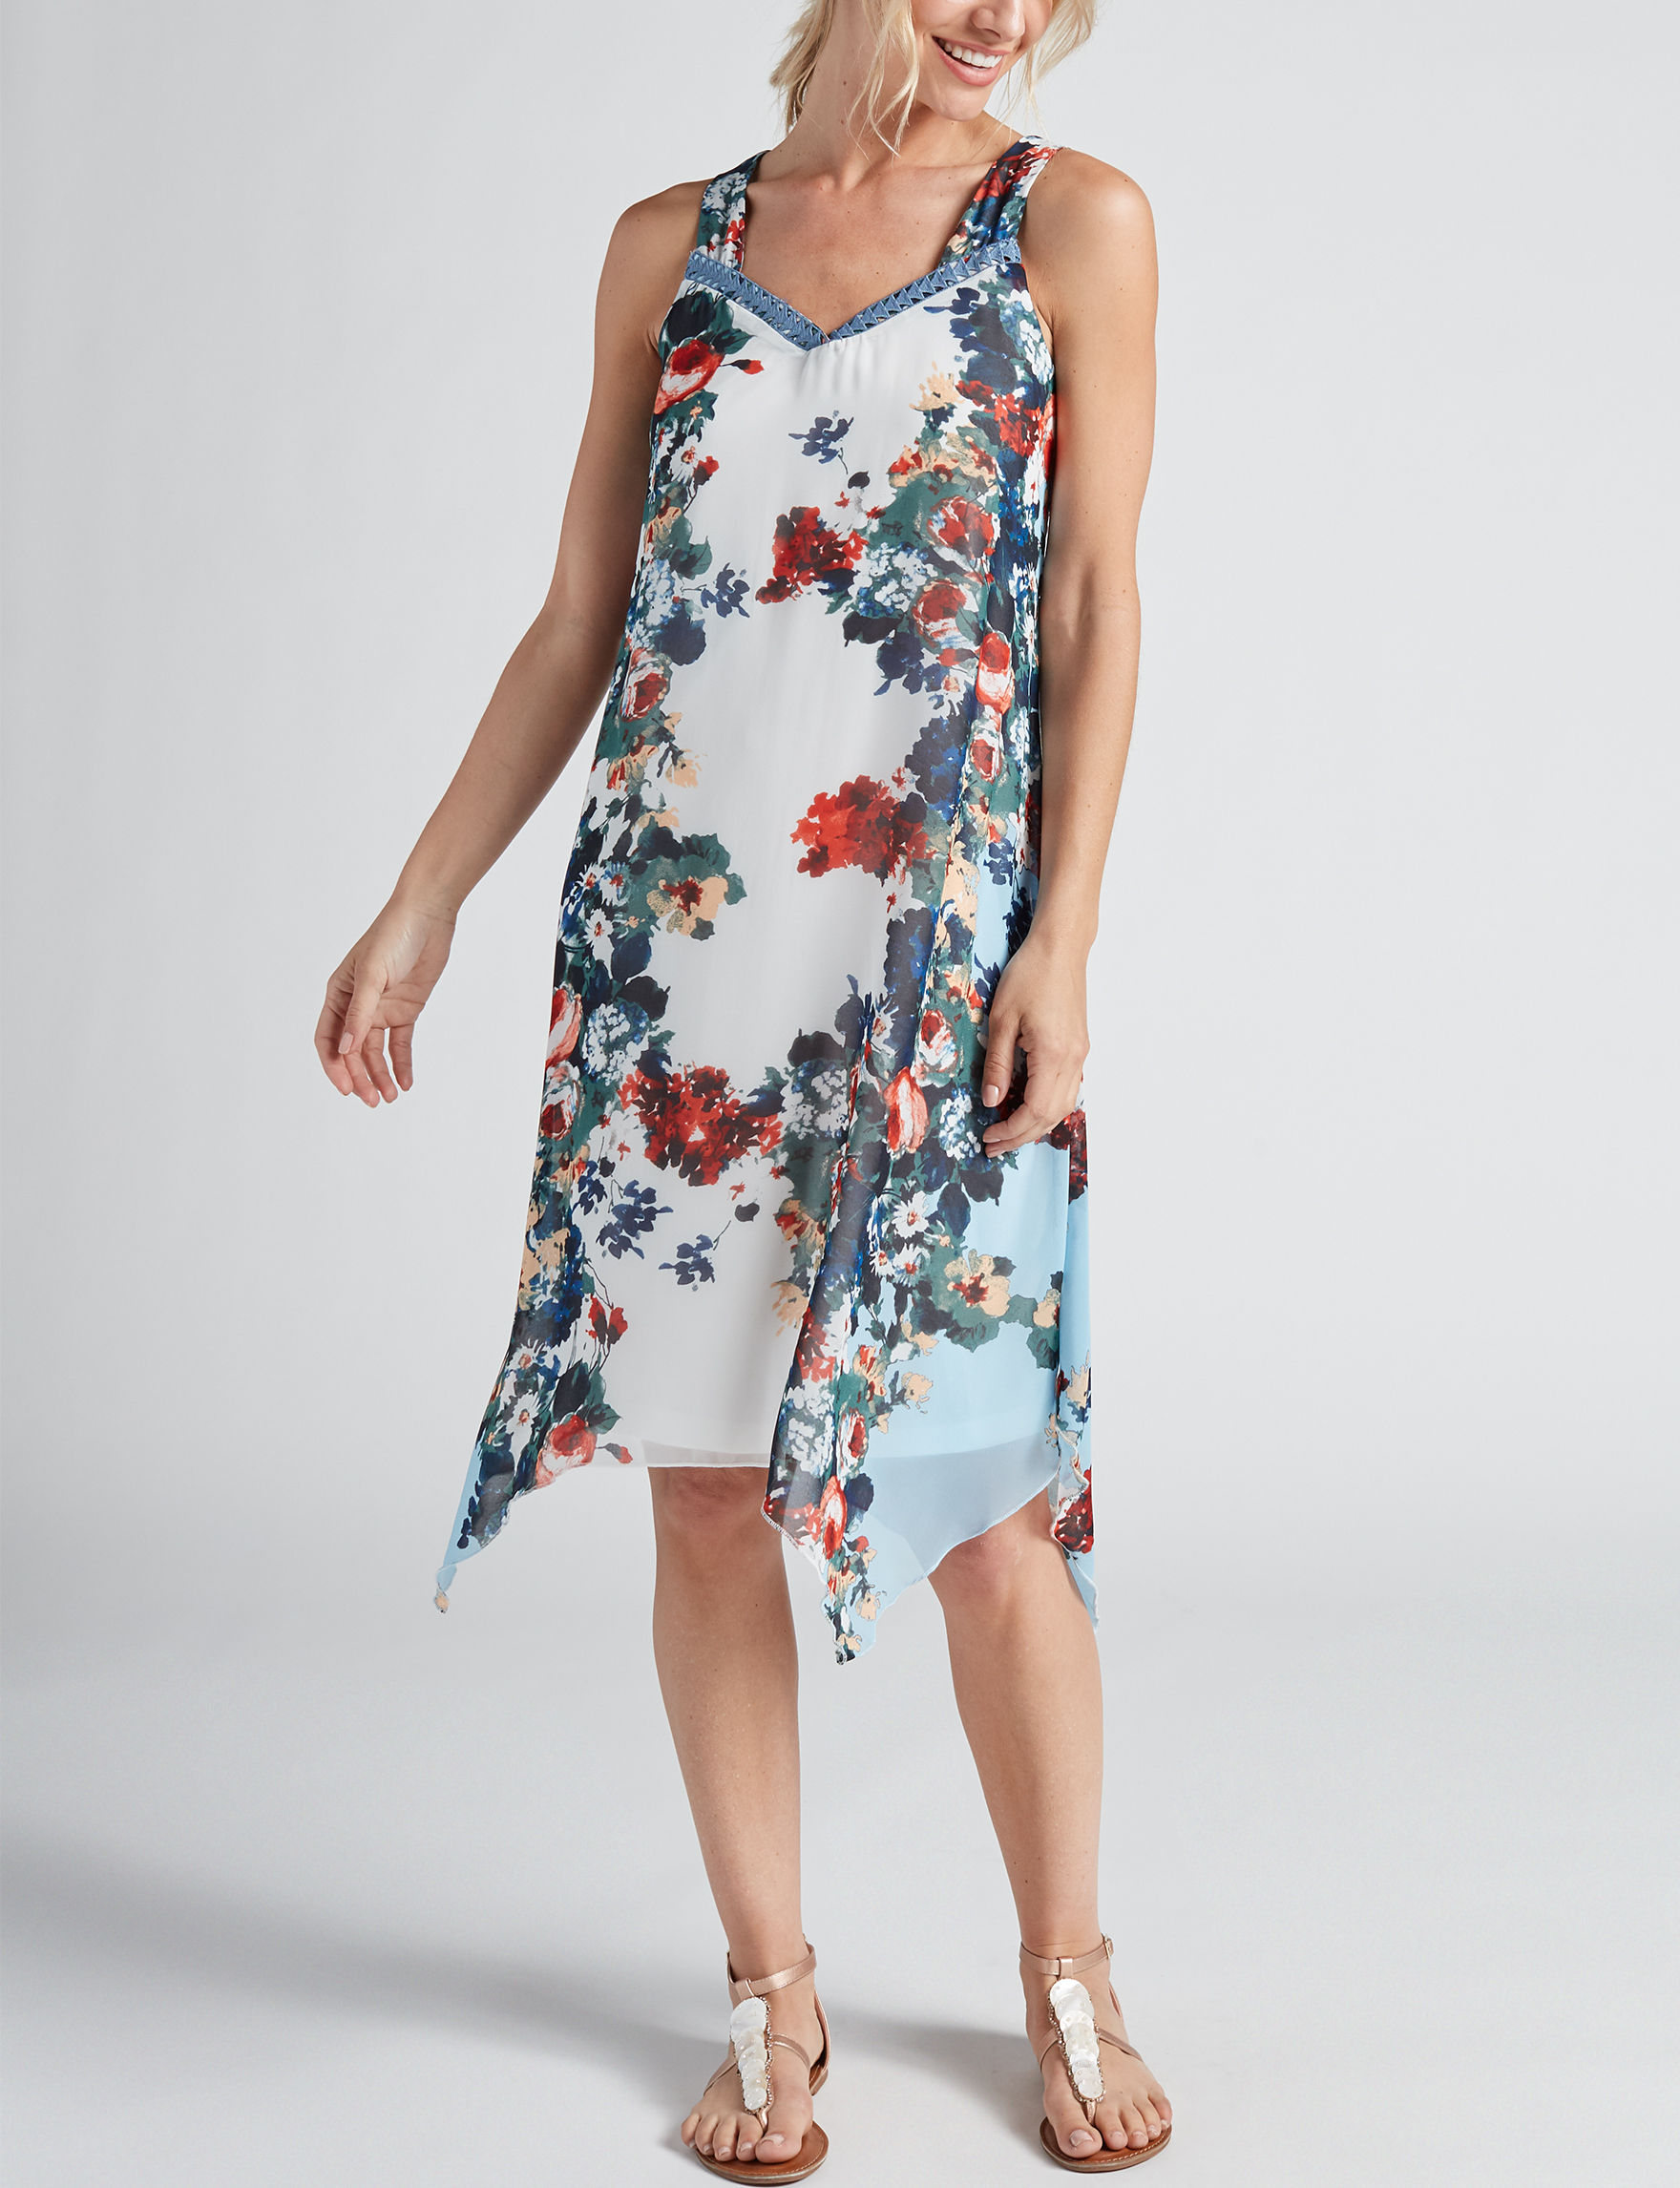 One World White Floral Everyday & Casual